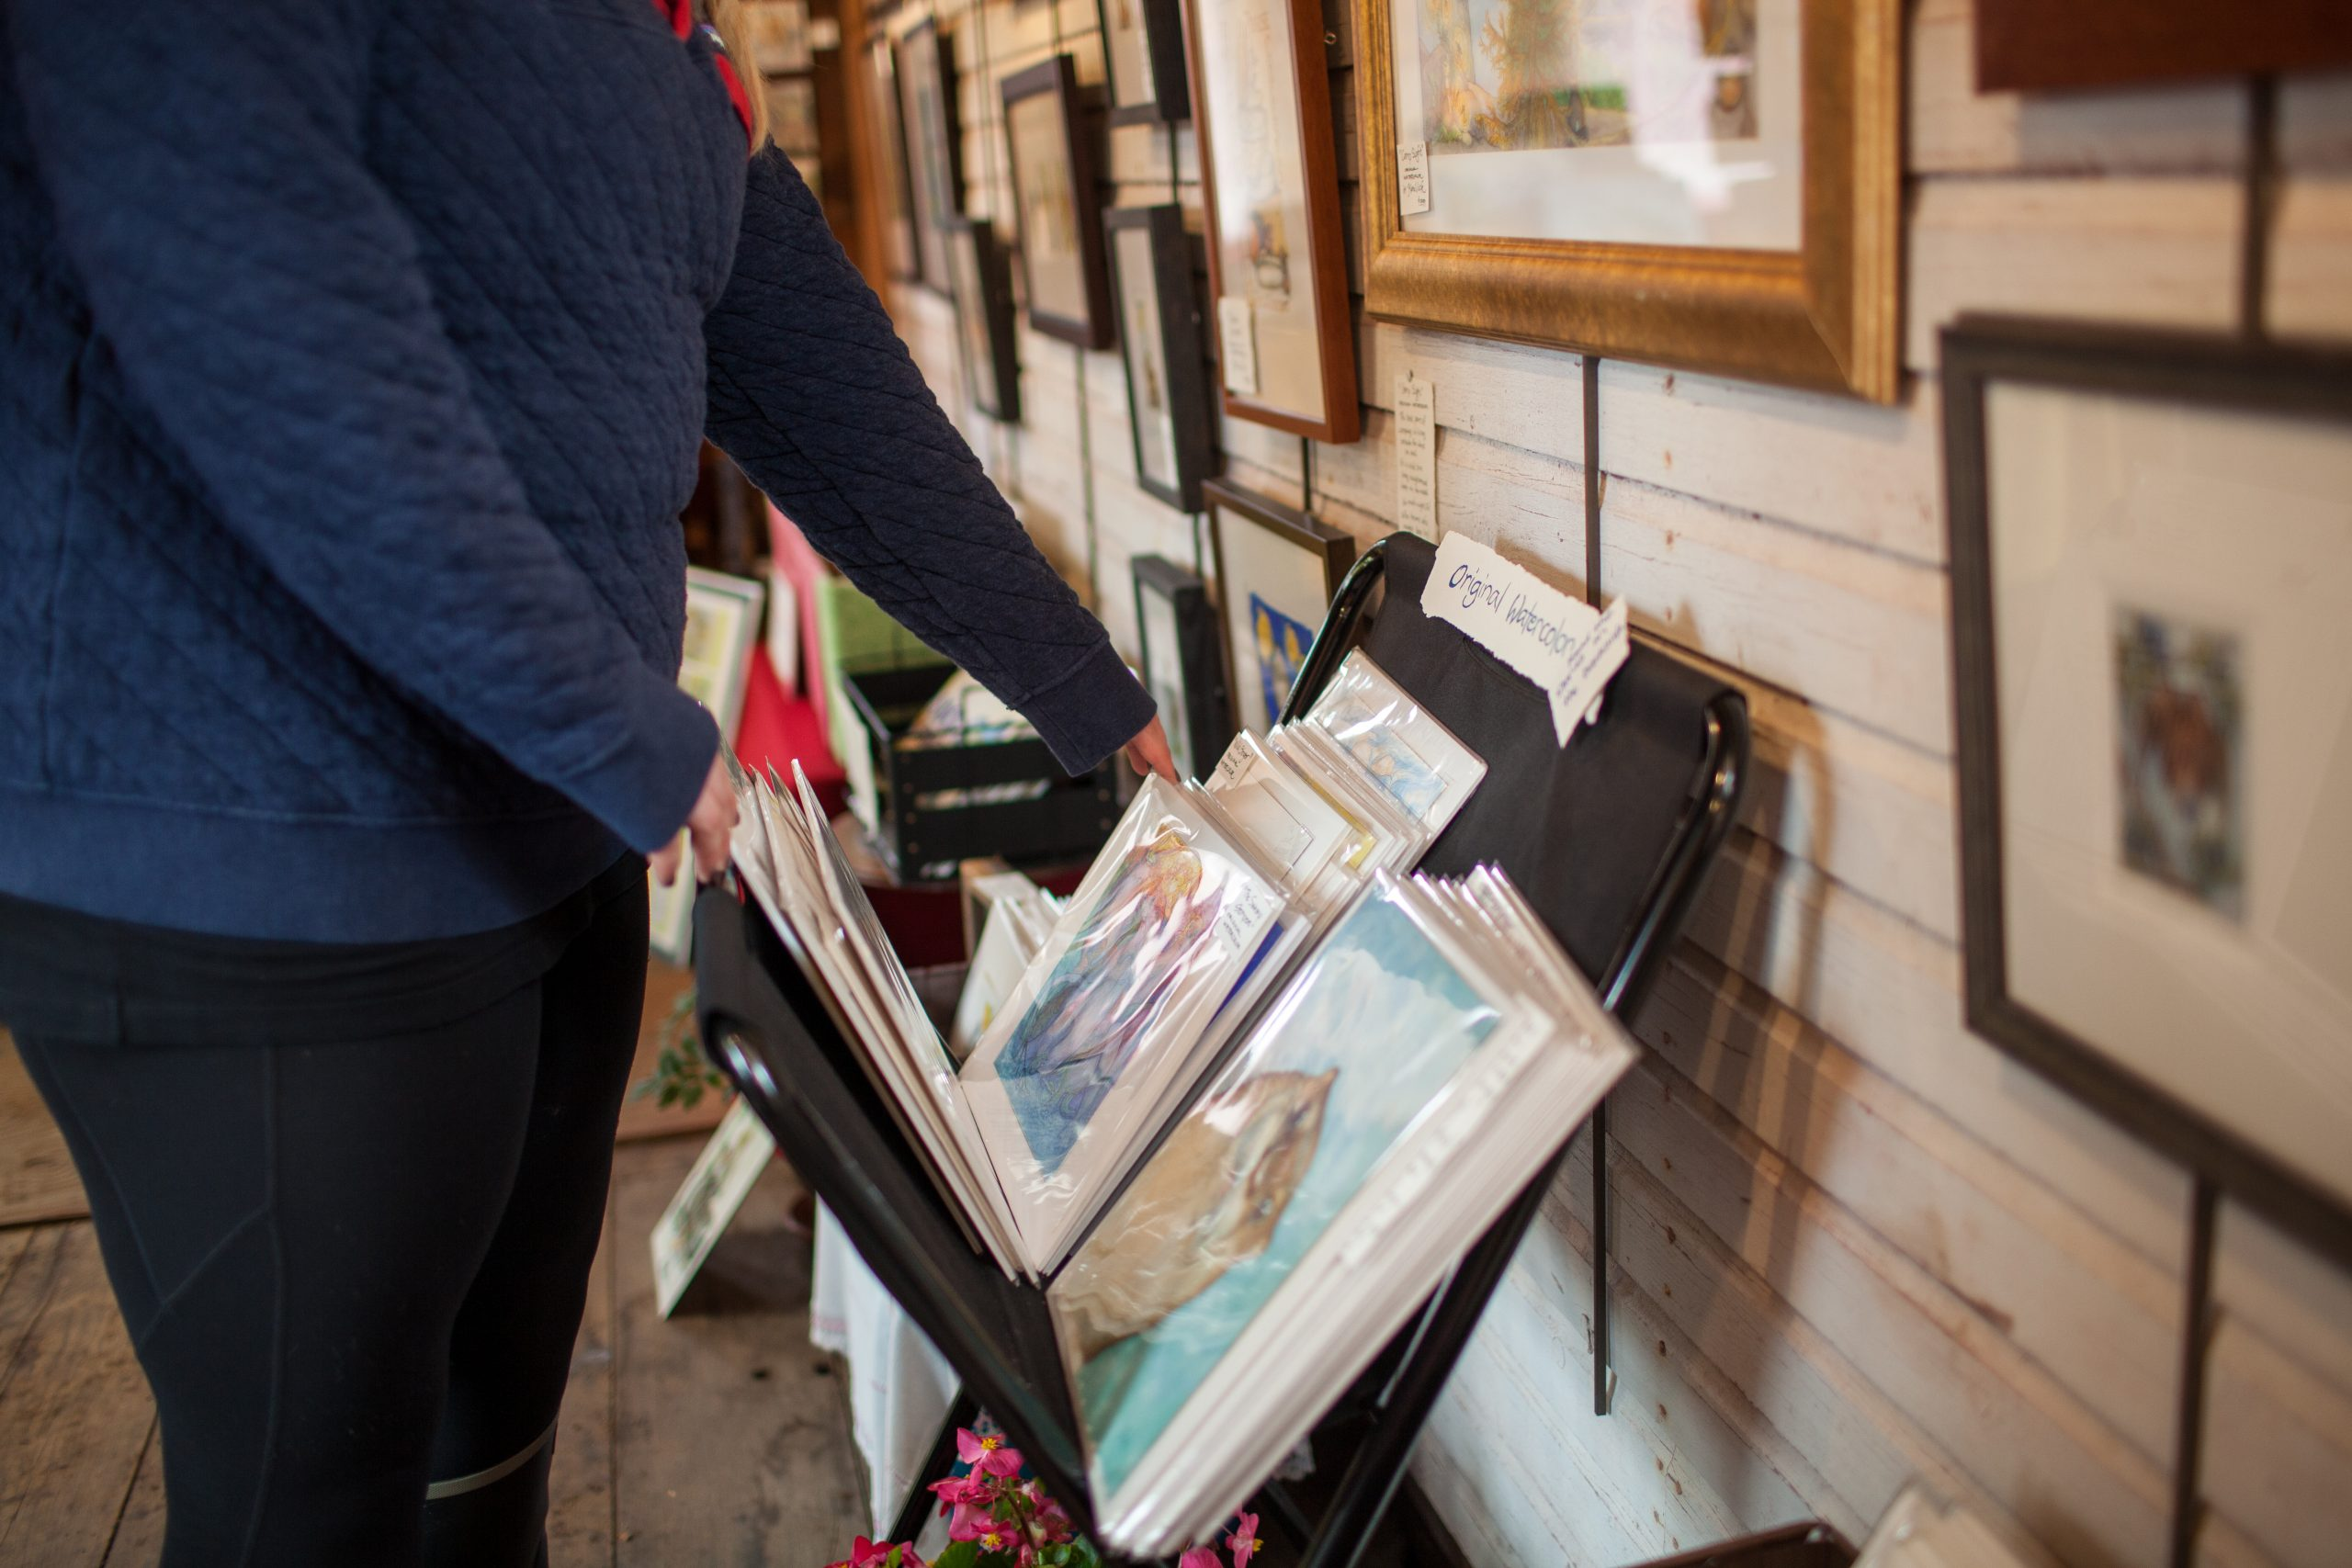 Woman looks through art prints at the Art Along the Lake Fall Studio Tour in Cook County